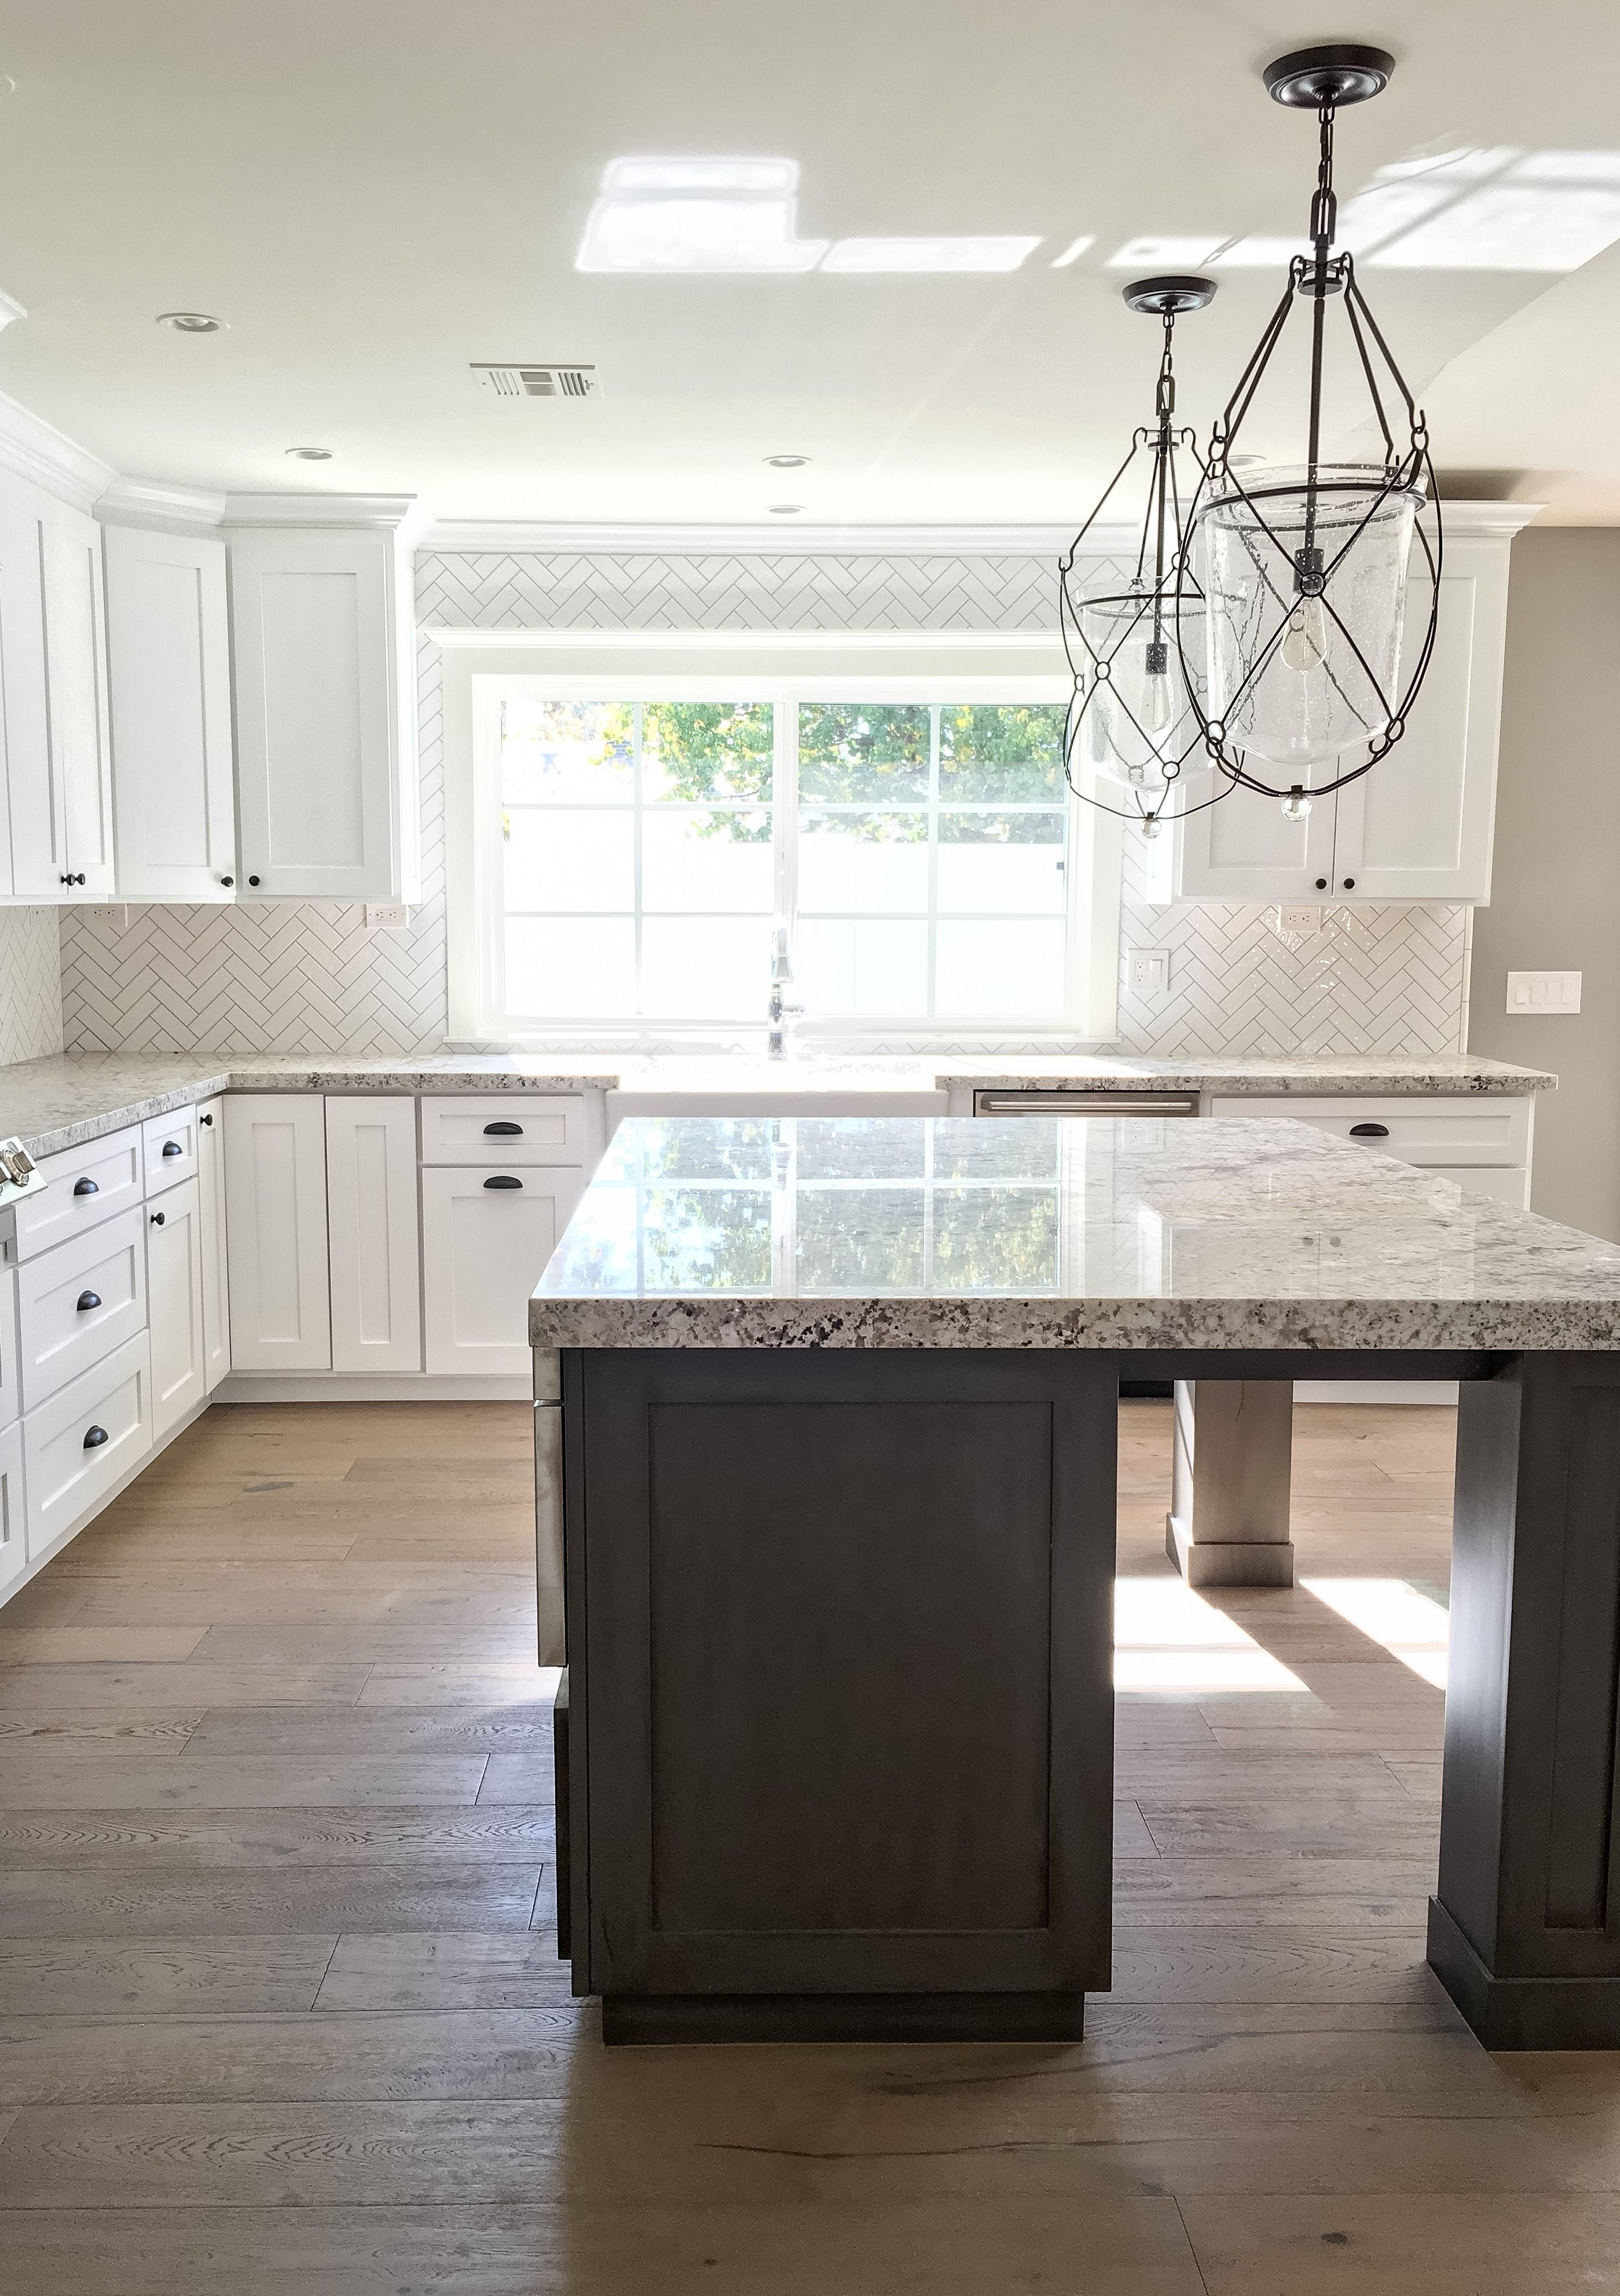 Best We Are Drooling Over This Kitchen With White Springs 640 x 480